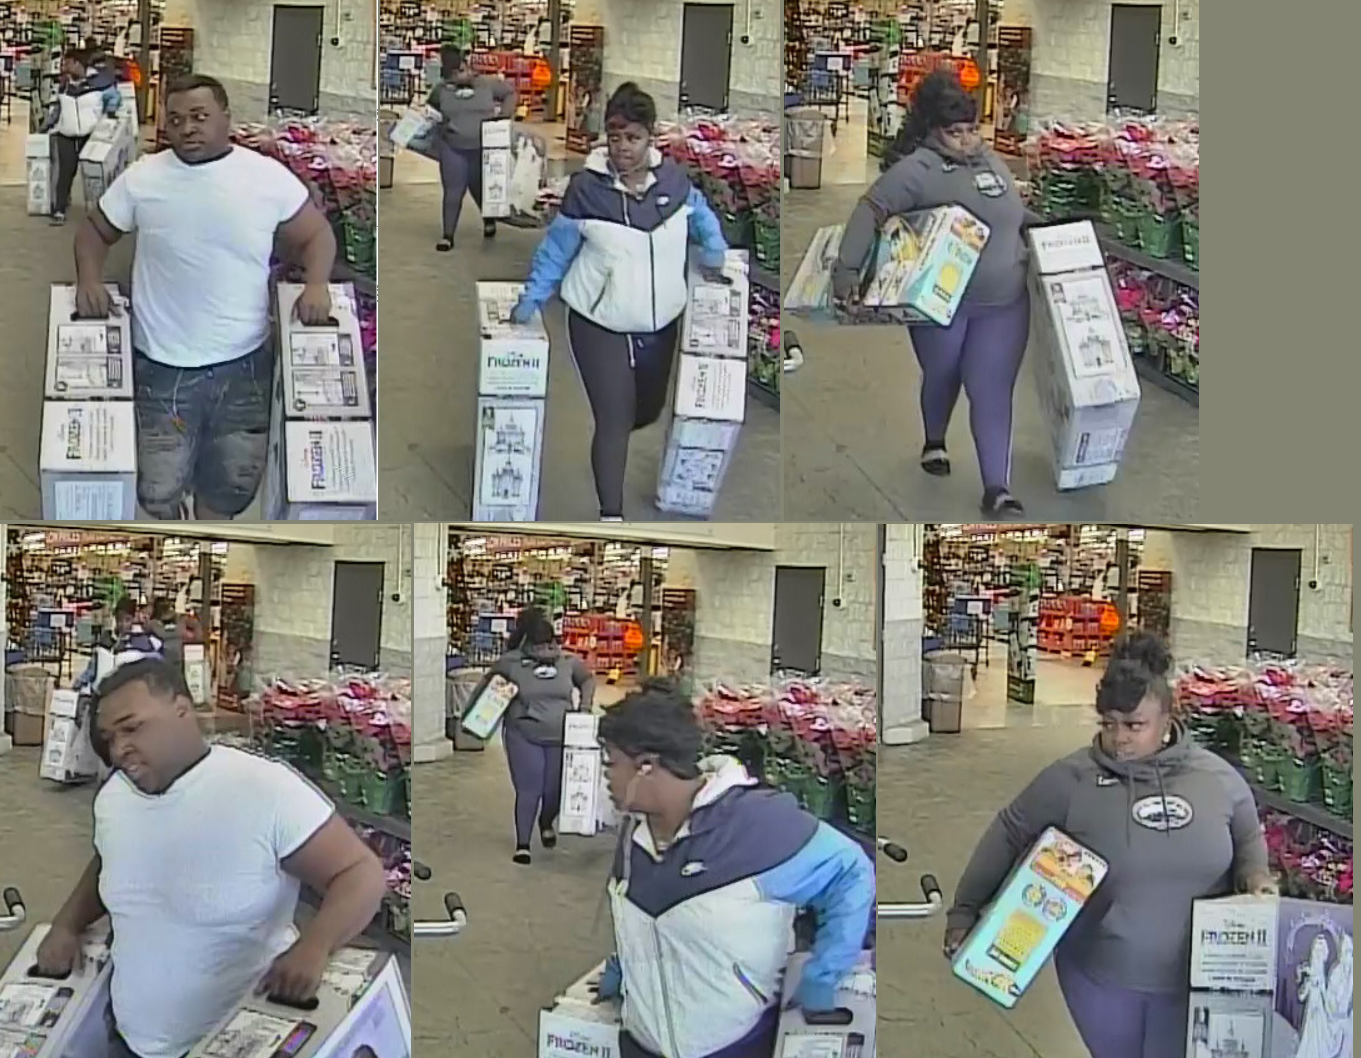 Leeds Police asking for help identifying 3 people accused of theft